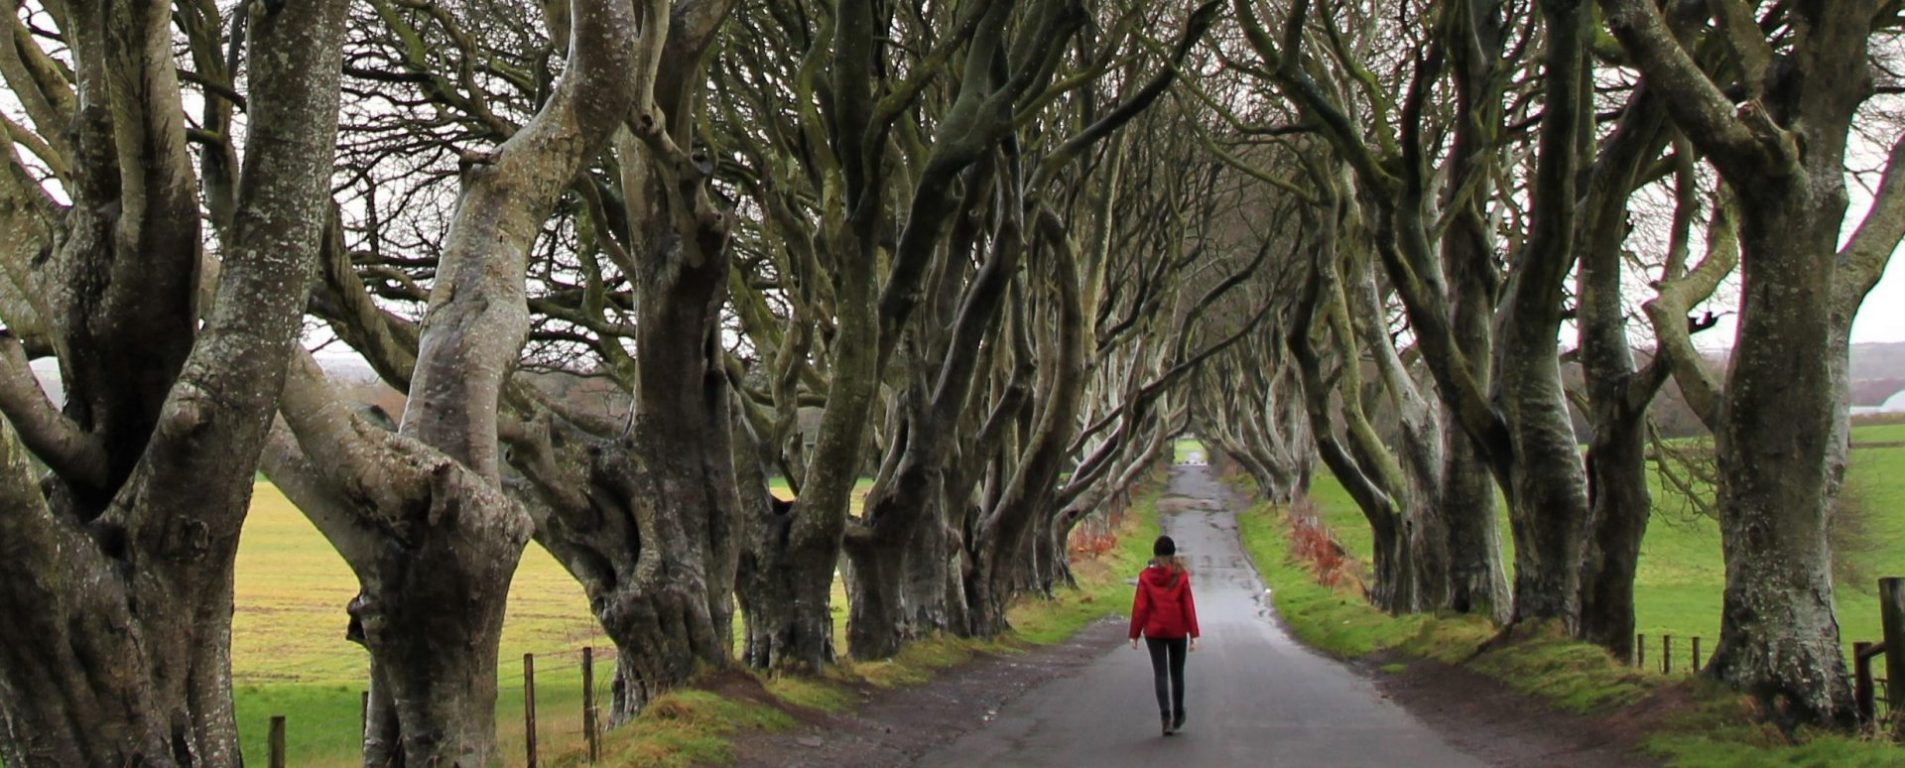 Dark Hedges in Northern Ireland without crowds